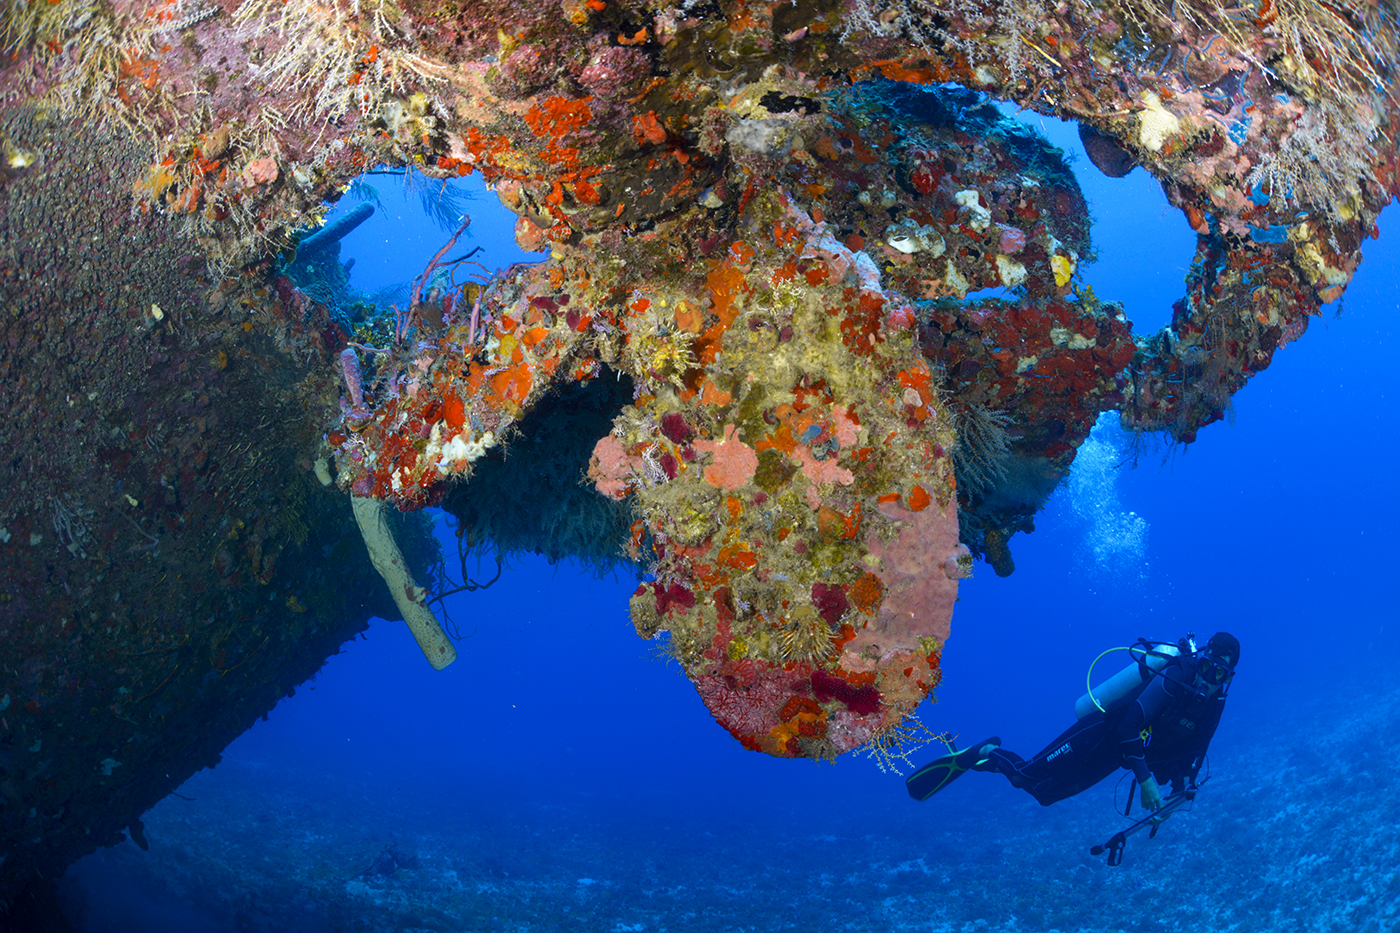 A diver surveys the propeller of the Jado Trader, which is one of Guanaja's signature wreck dives.